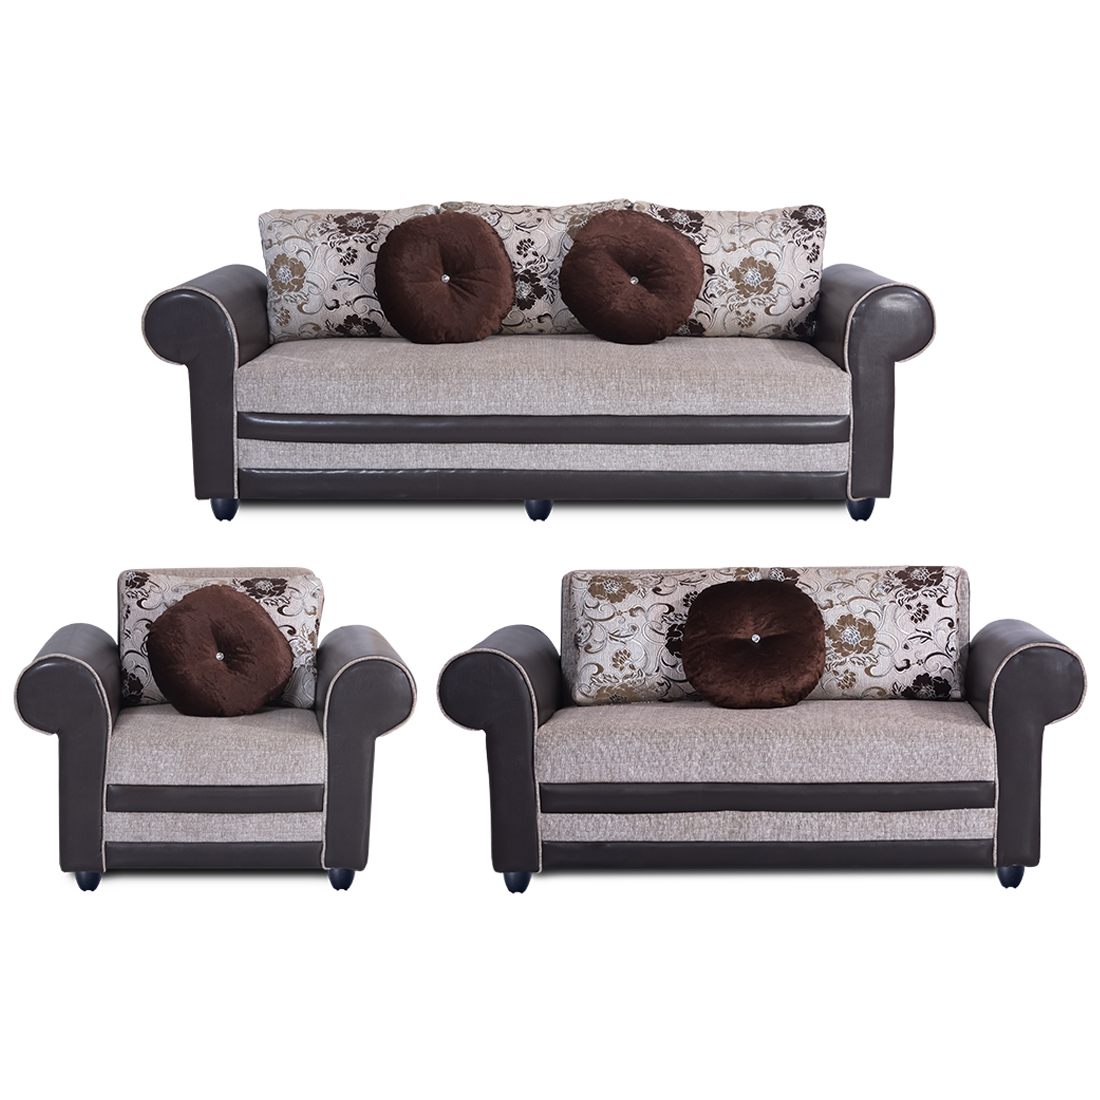 Bharat Lifestyle Alex Fabric Cream Brown Sofa Set 3 2 1 Online Price In India Buybharat Lifestyle